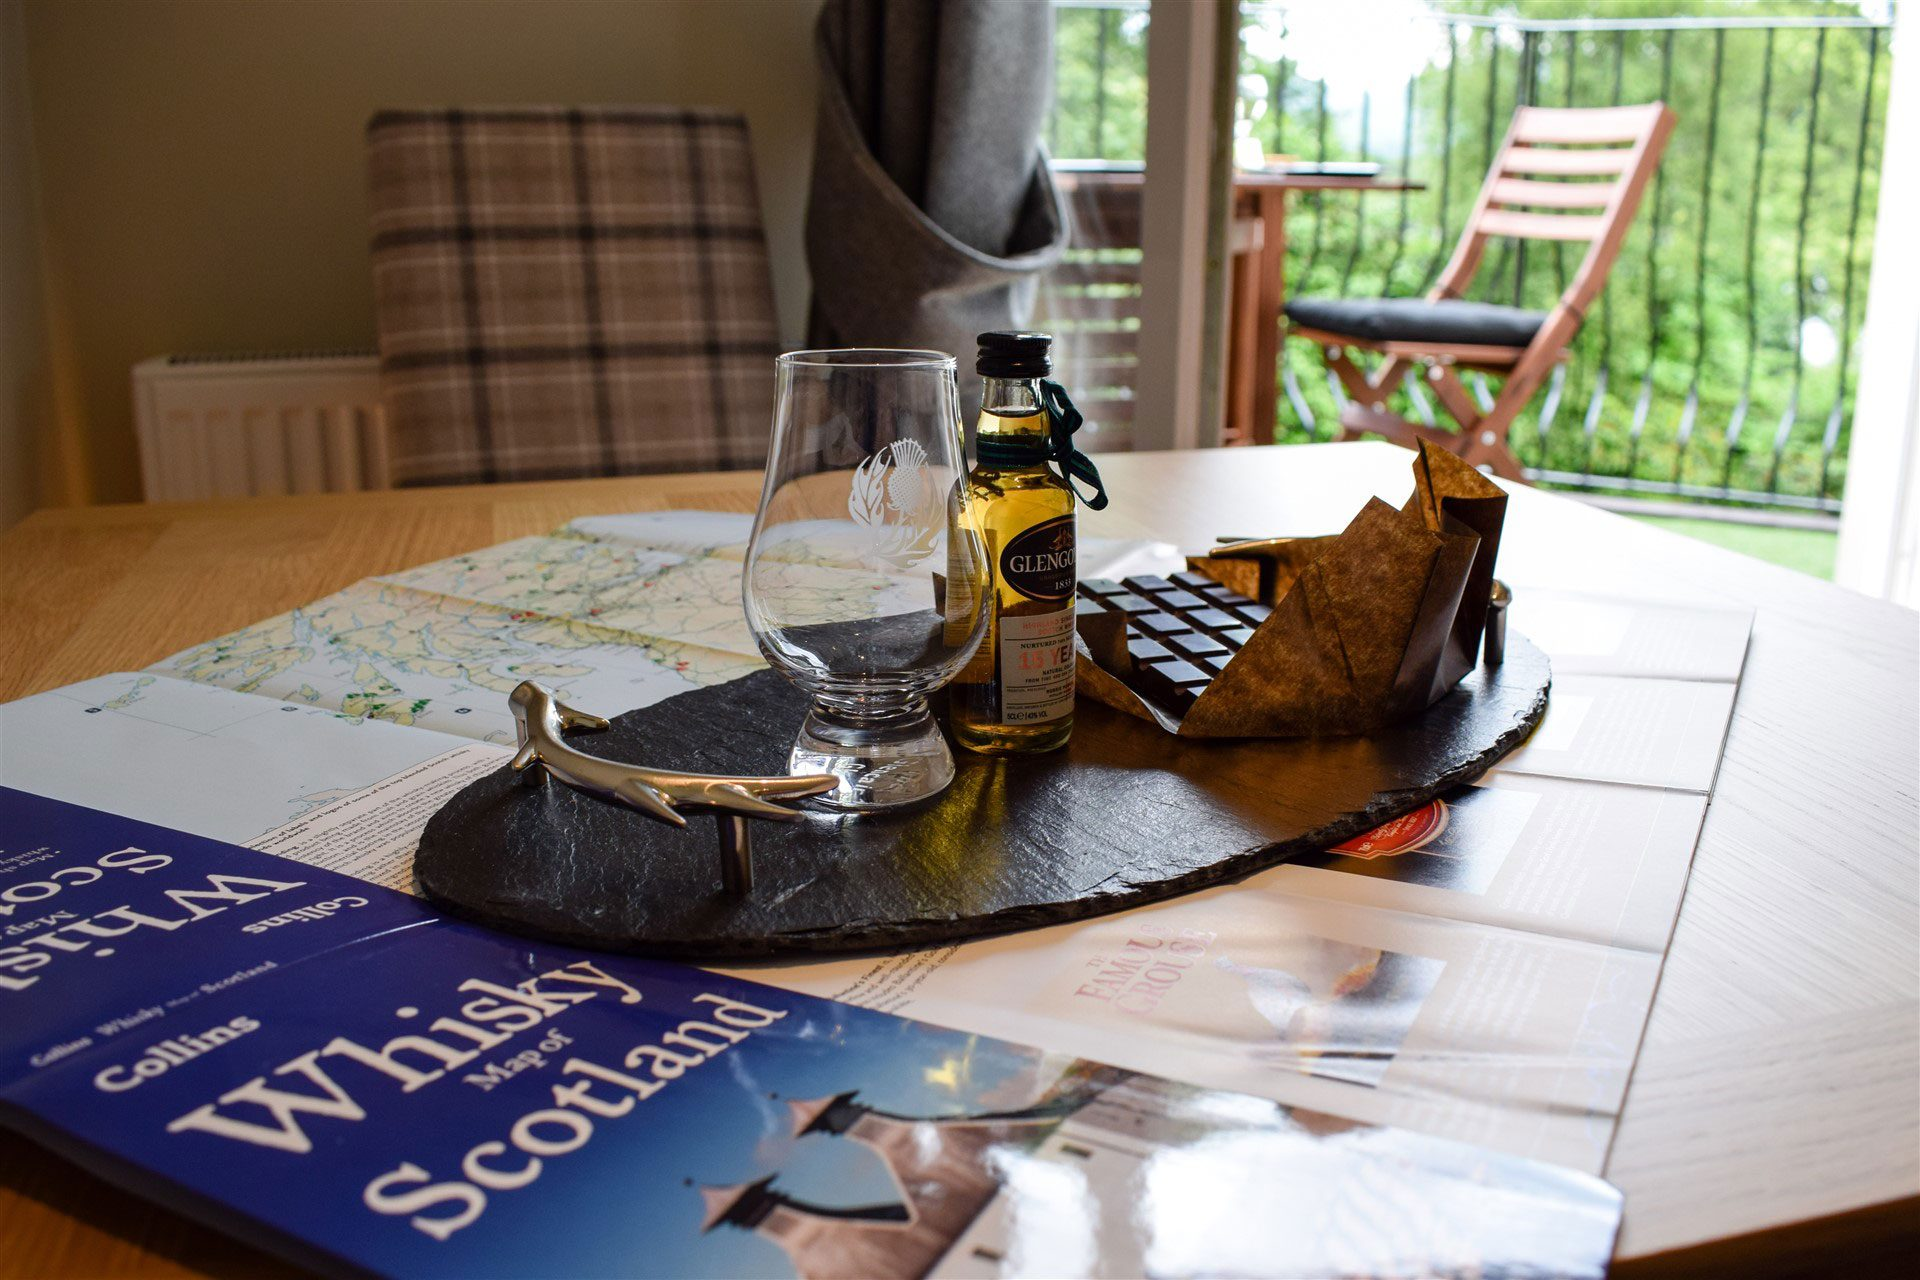 Benoch Luxury Self Catering Apartment is the perfect base for exploring whisky distilleries